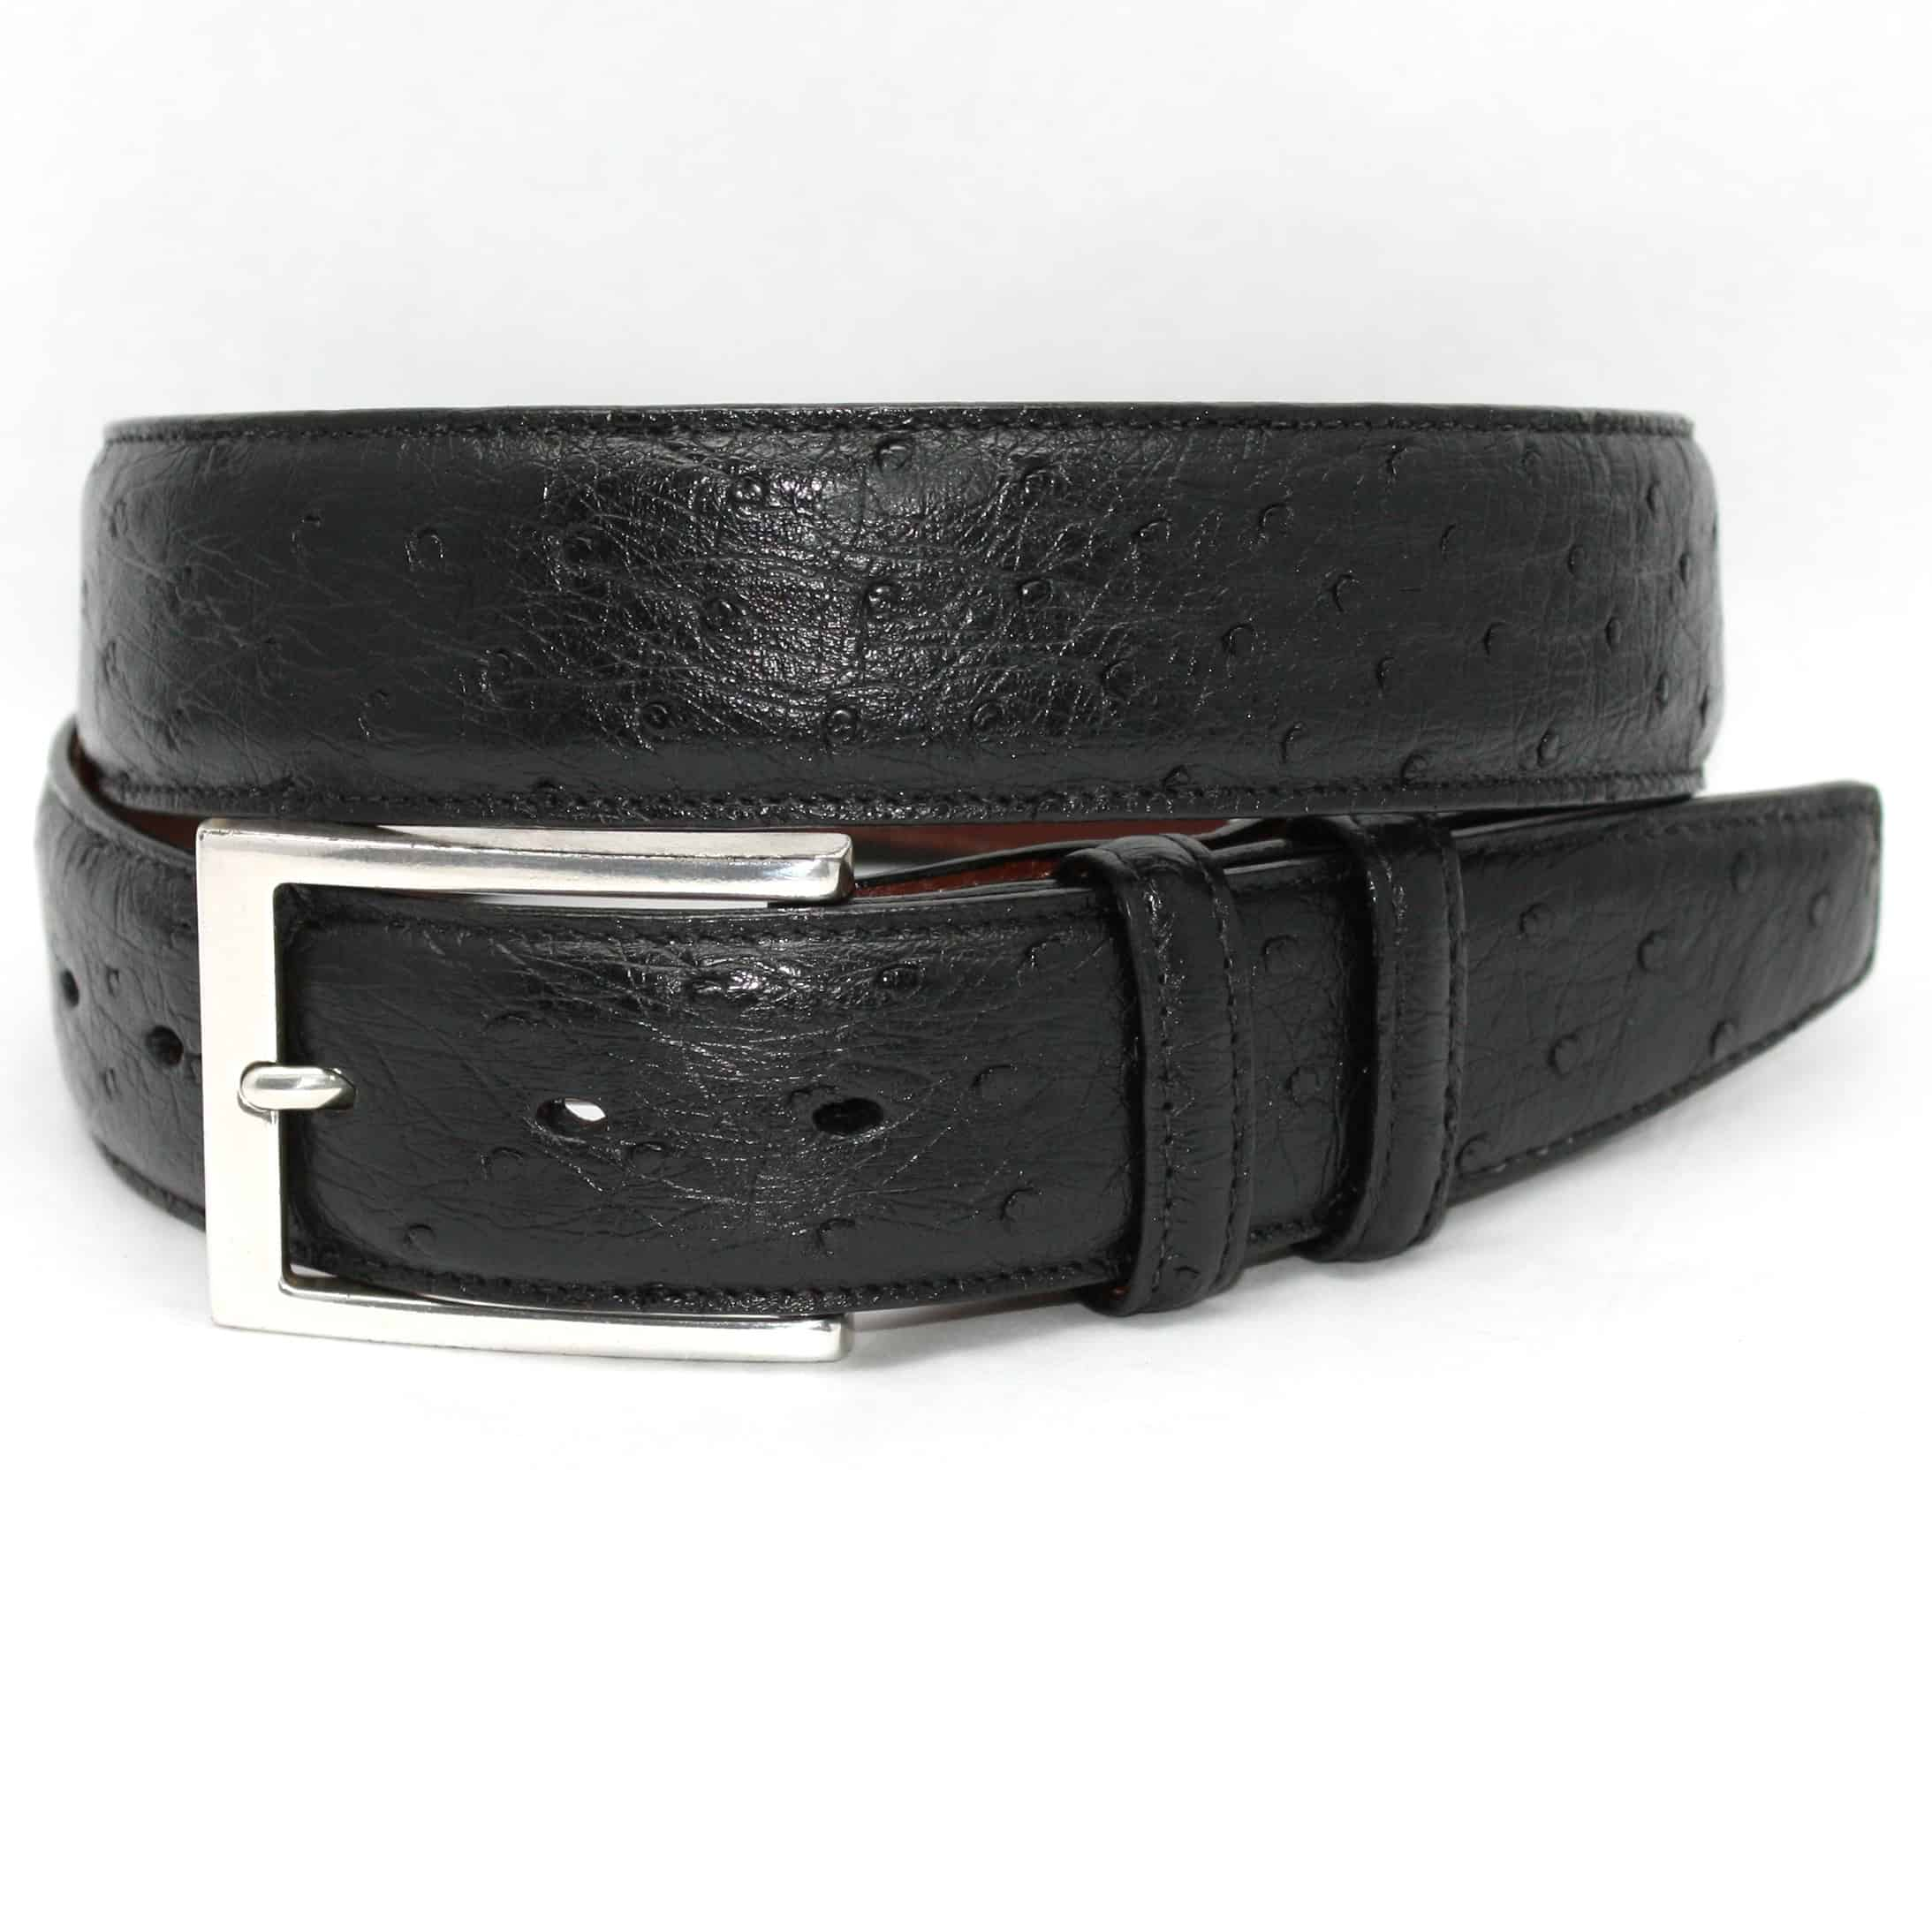 Genuine South African Ostrich Belt - Black,BELT,Gent Row, | GentRow.com